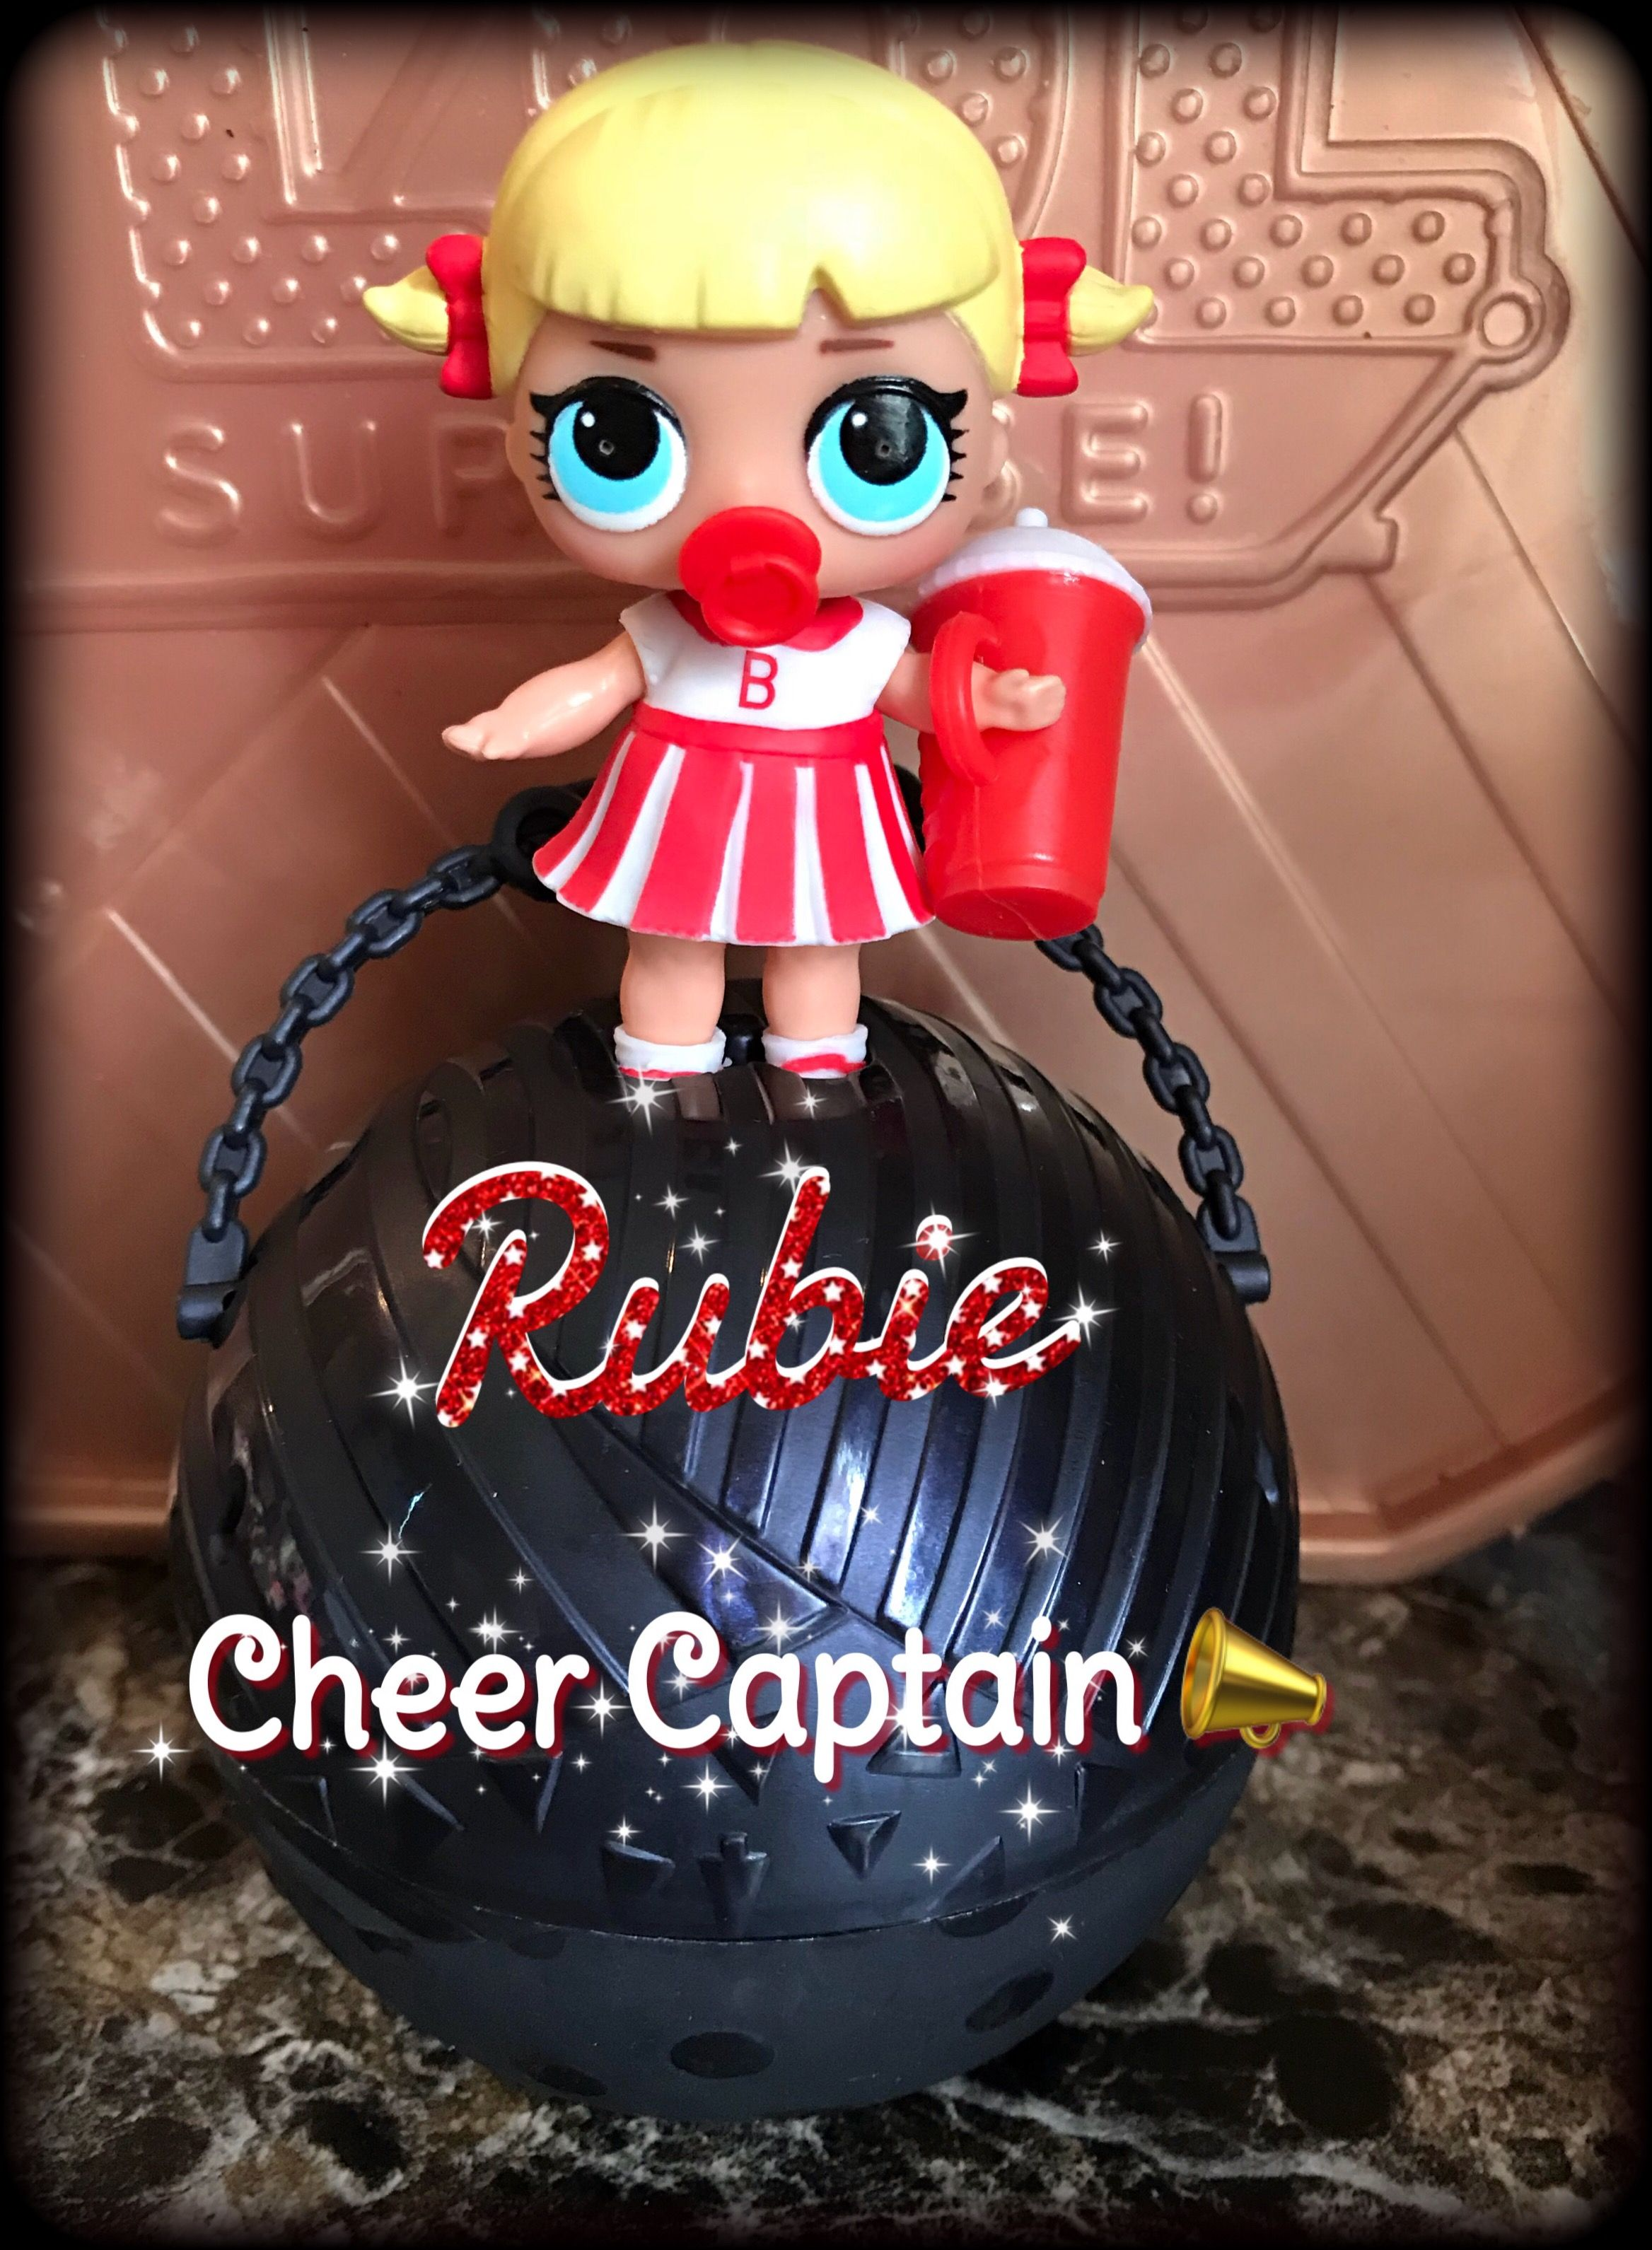 My Daughter S Hard To Find Cheer Captain Lol Surprise Dolls Cheerleader Rare Unicorn Rubie Cheer Captain Toys For Girls Christmas Bulbs